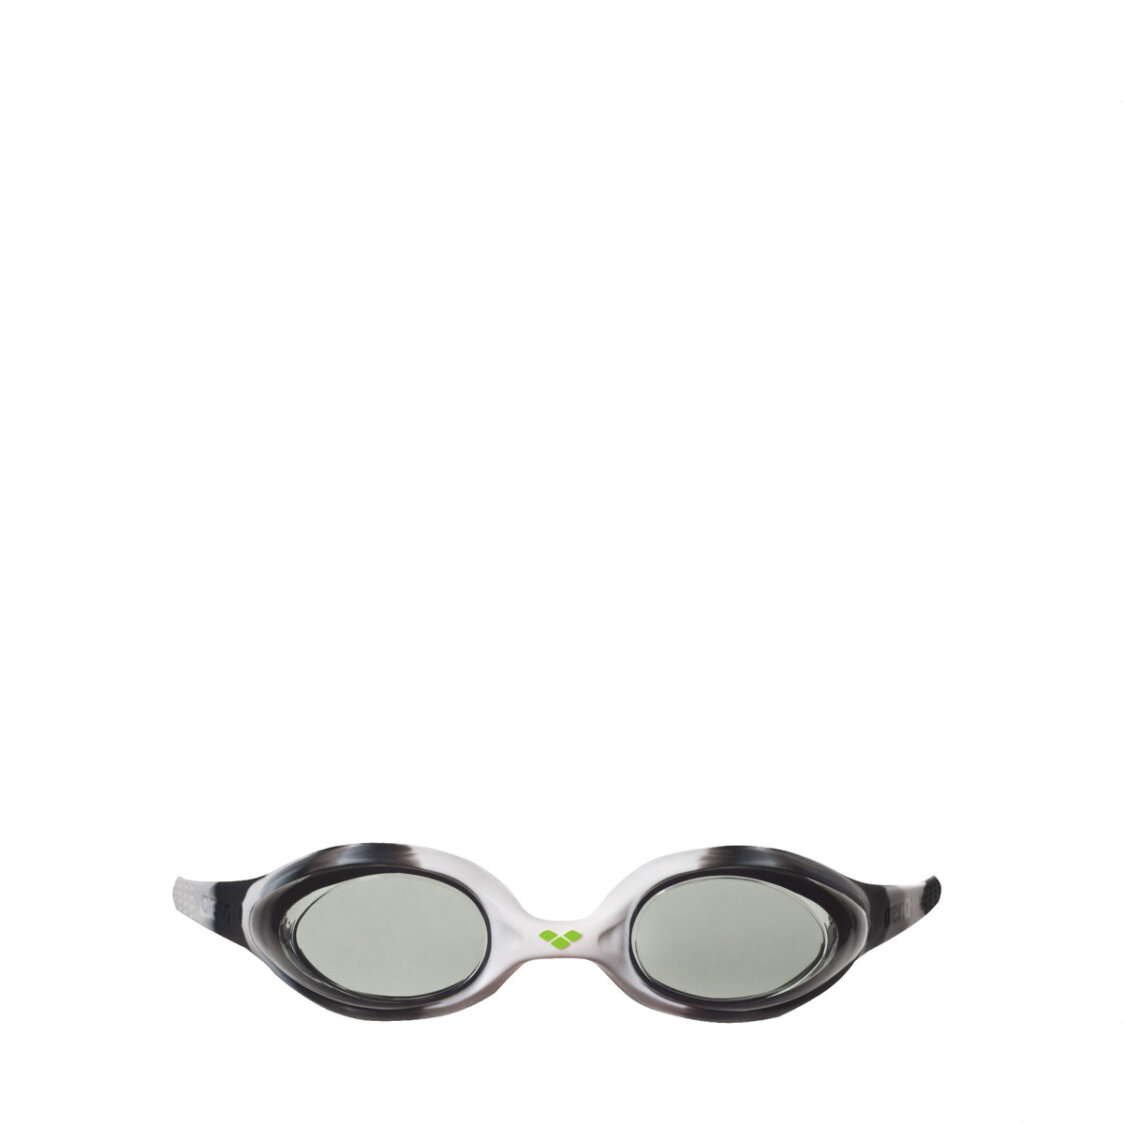 Arena Junior Mirror Goggle 6 to 12 Years Old Black Silver KGAGG410JM